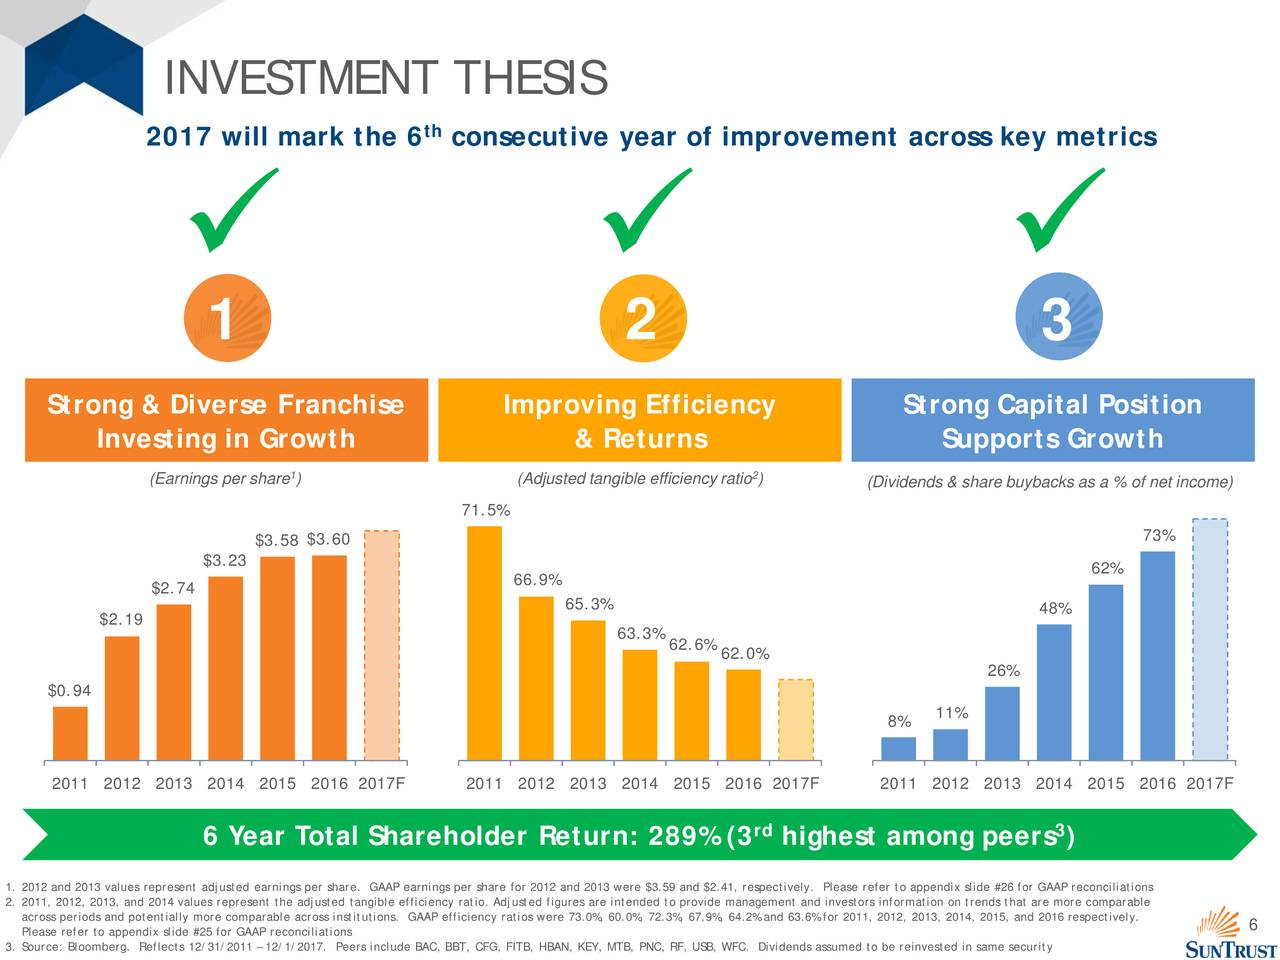 thesis on investment banking Browse 0 different 2018 investment banking thesis in hamburg on graduateland, the leading career portal for students and recent graduates.